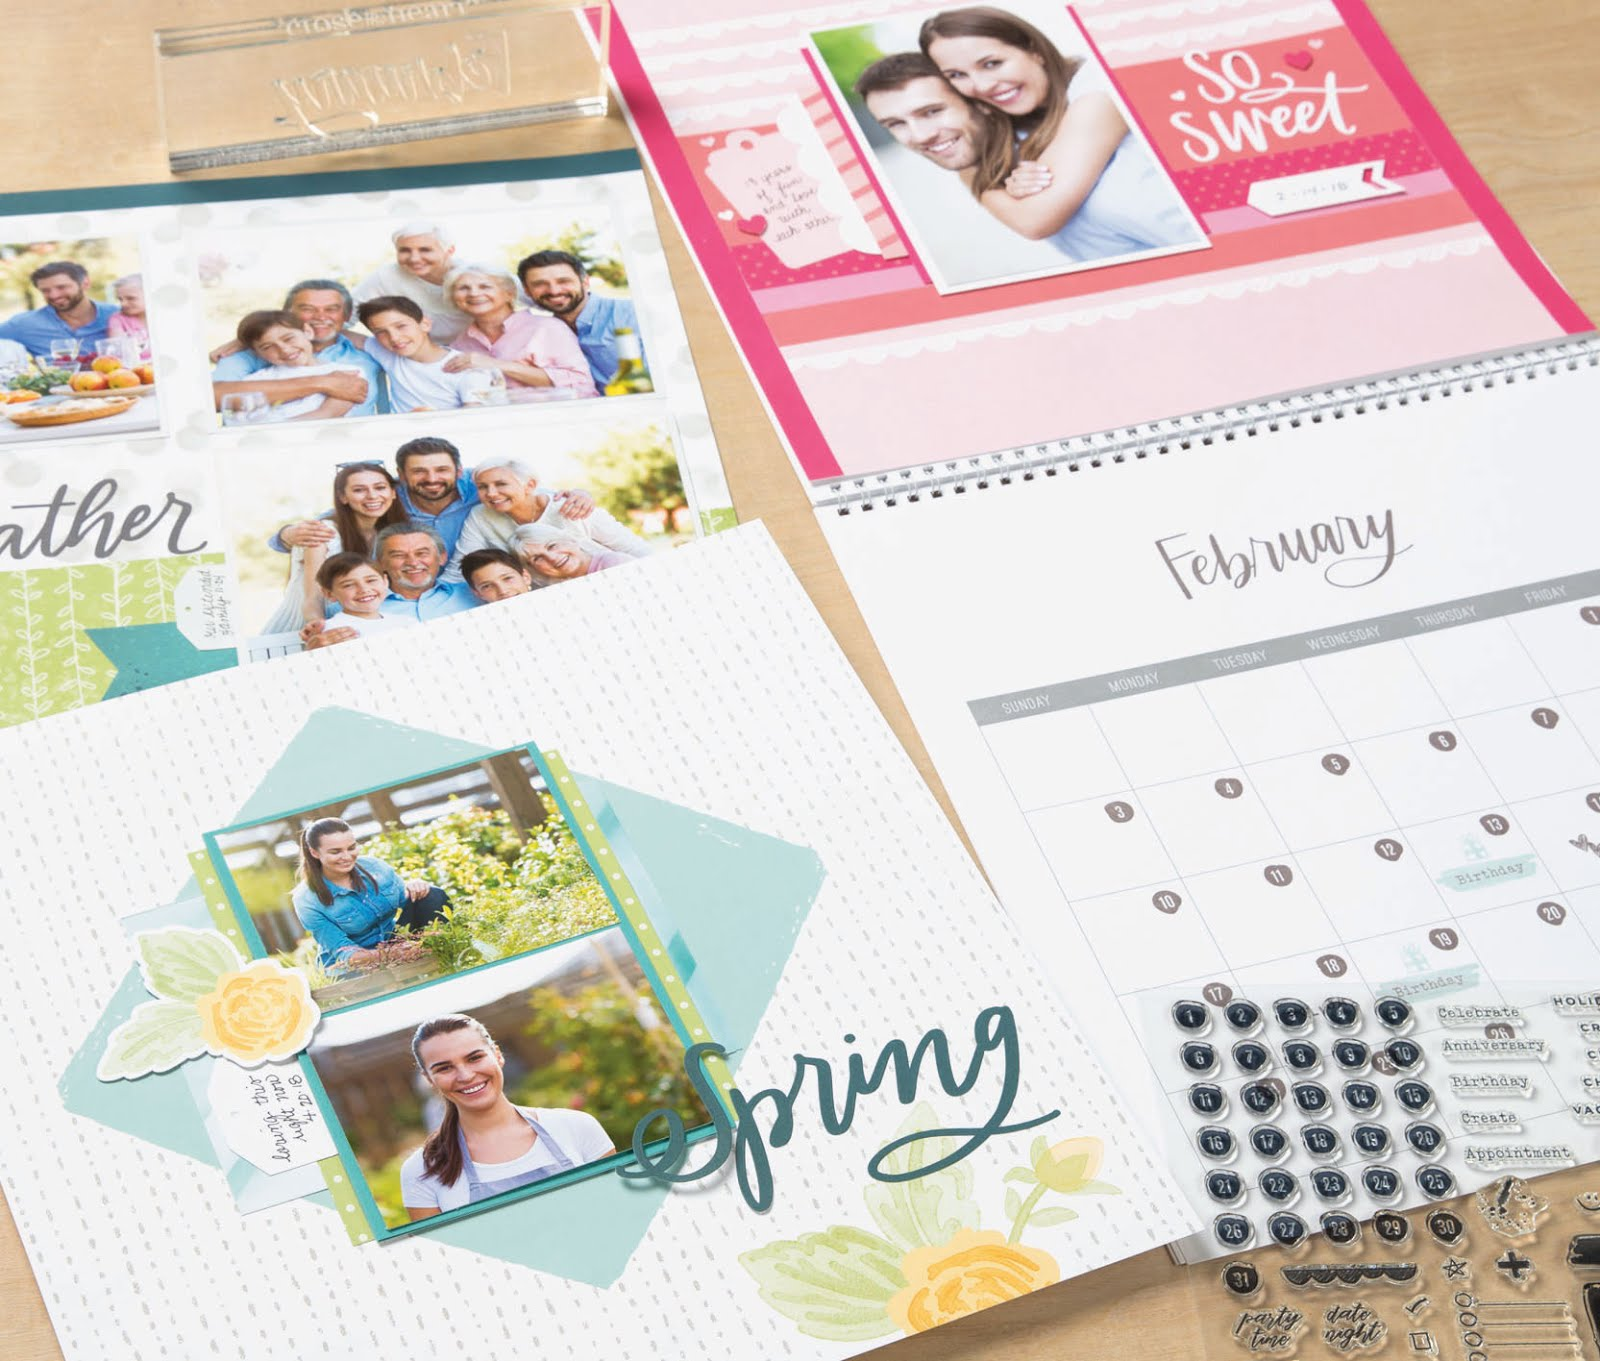 National Stamping Month Special